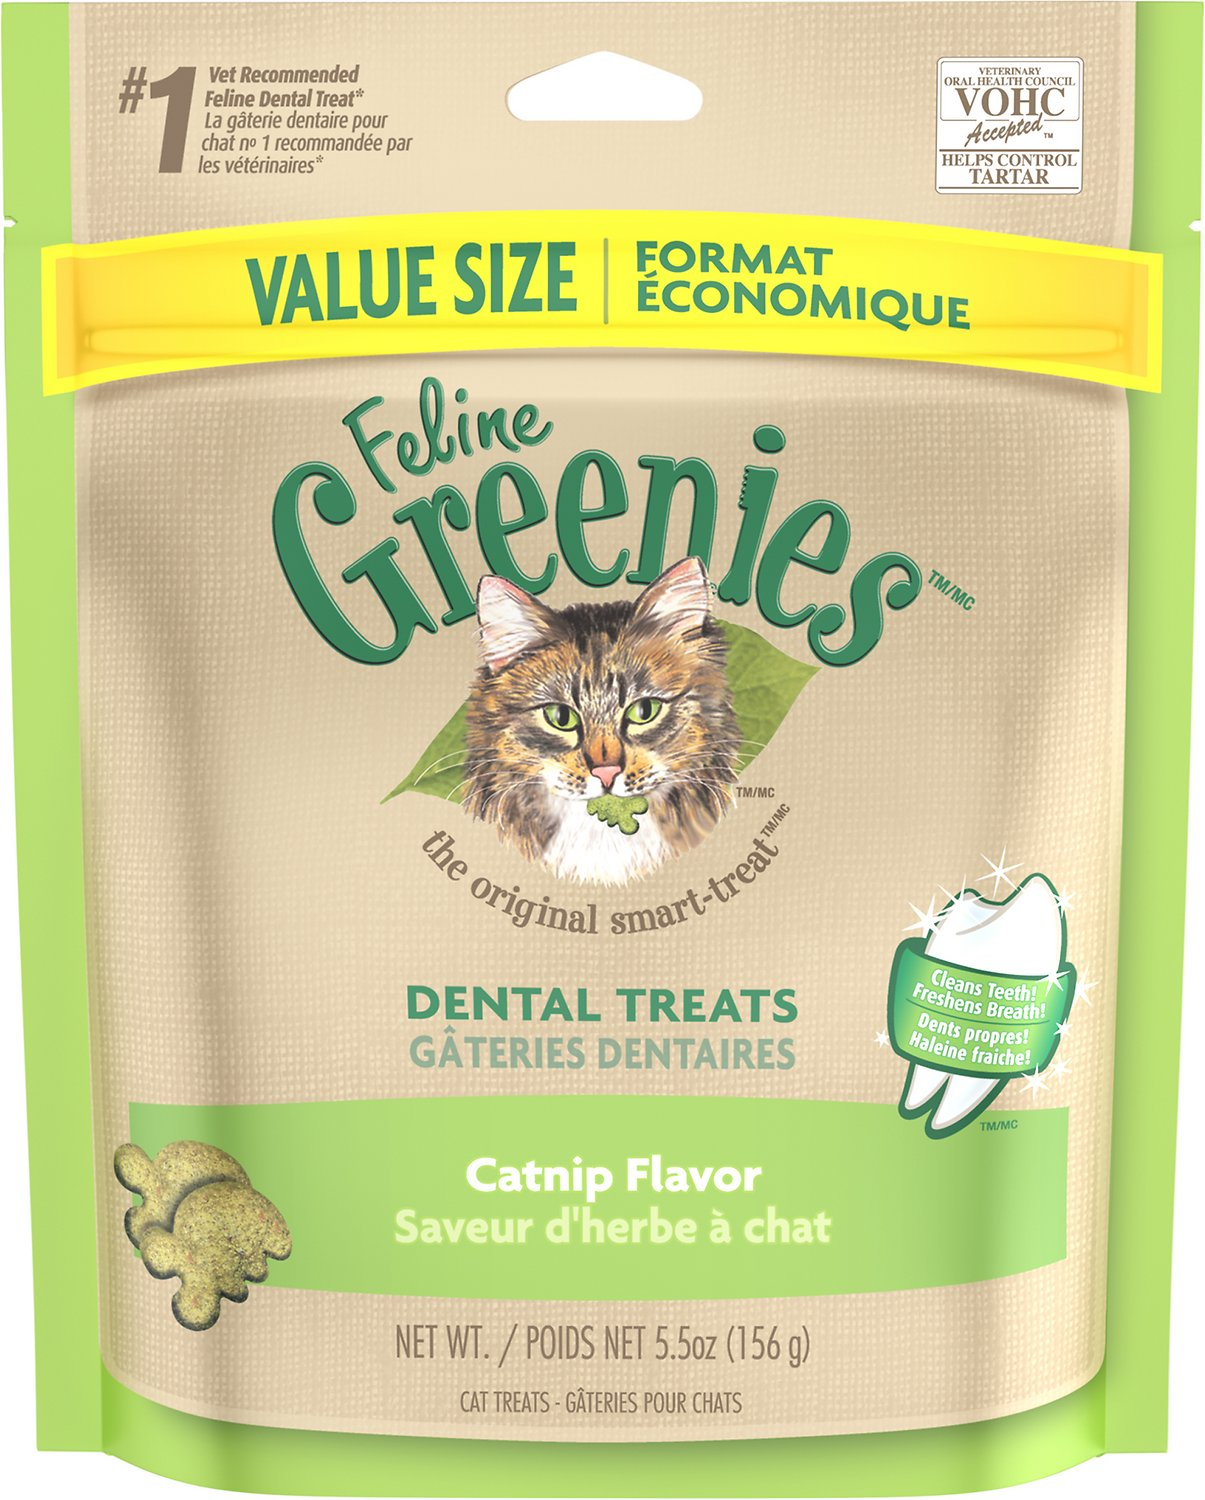 cd3b47a8 Greenies Feline Catnip Flavor Dental Cat Treats, 5.5-oz bag - Chewy.com